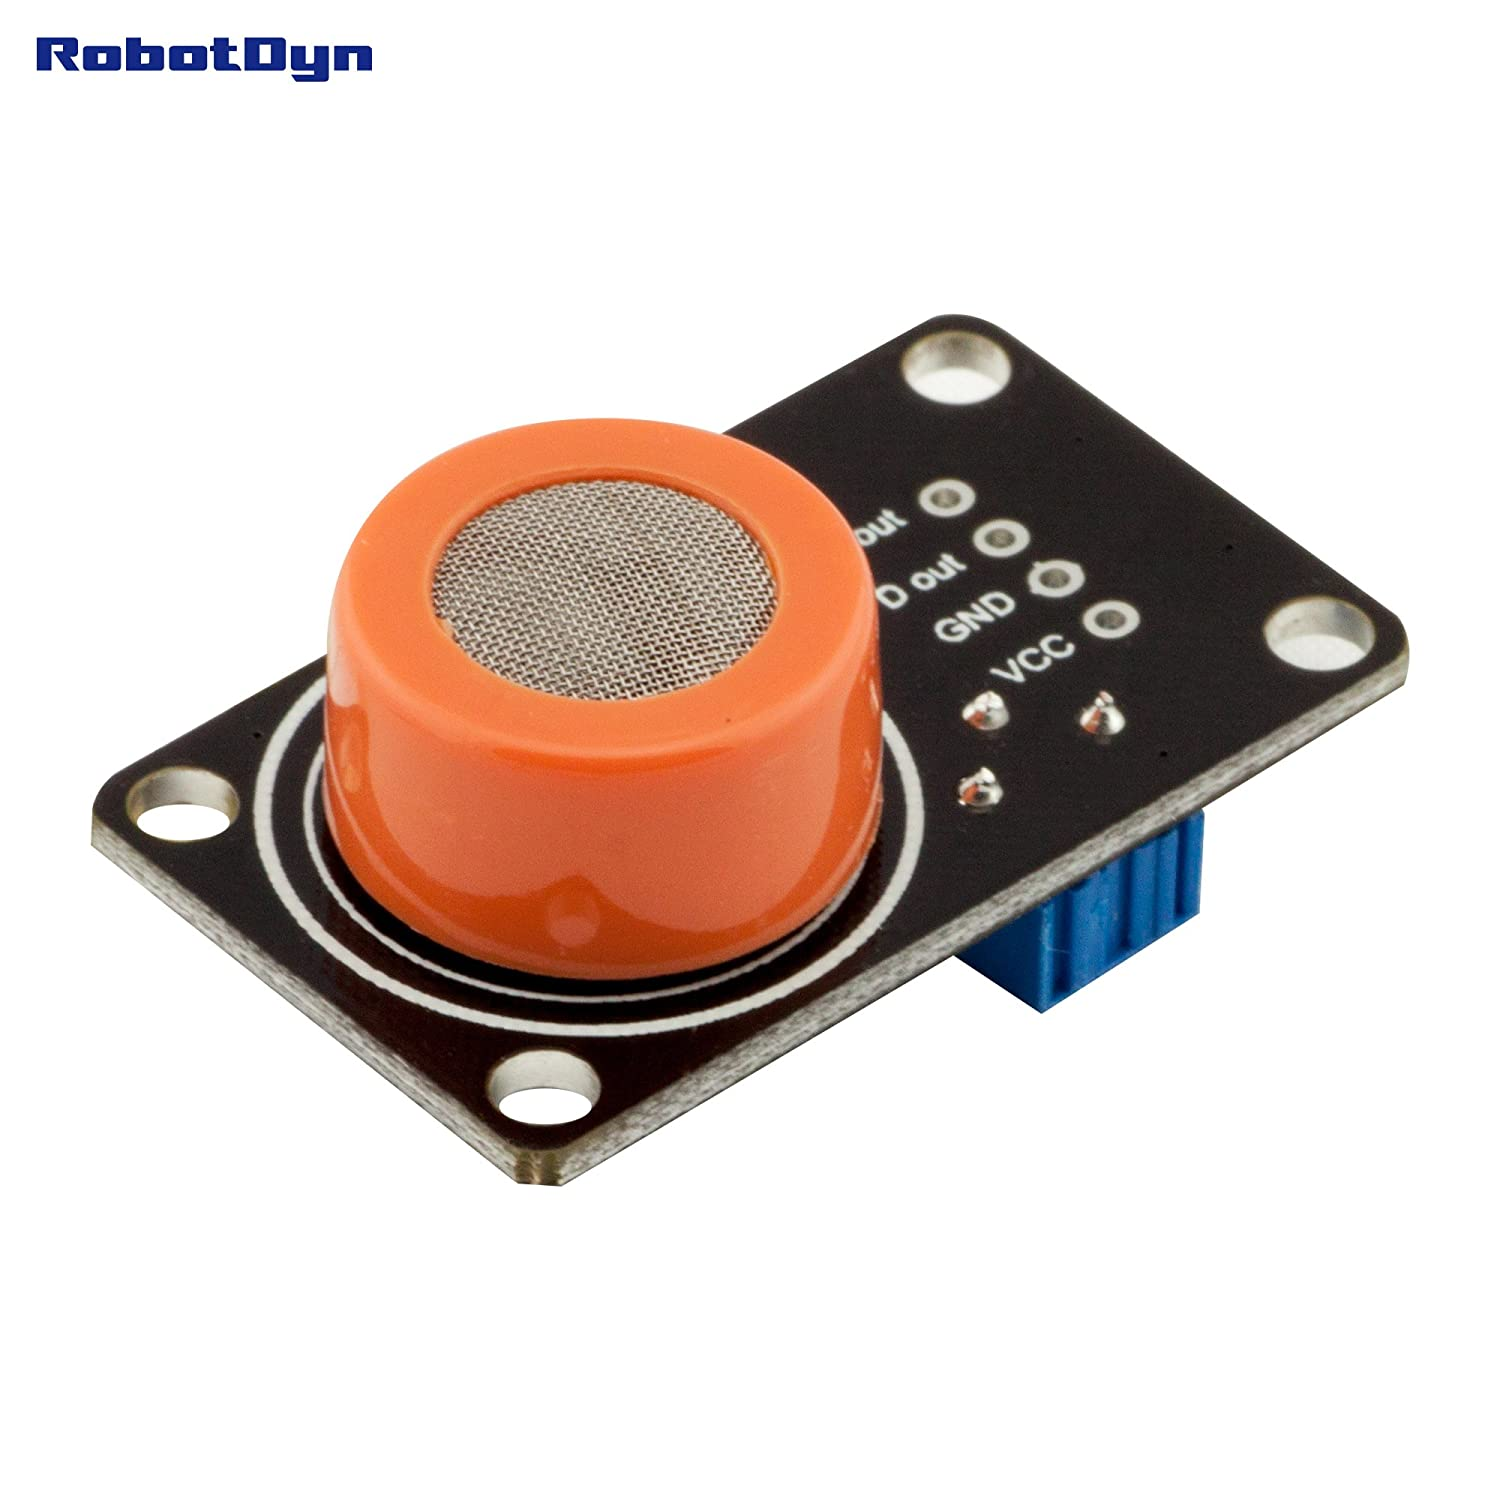 Robotdyn Lp Gas Propane Butane Sensor Mq 6 For Circuit Diagram Diy Projects Arduino Stm32 Raspberry Pi Analog And Digital Out Home Kitchen